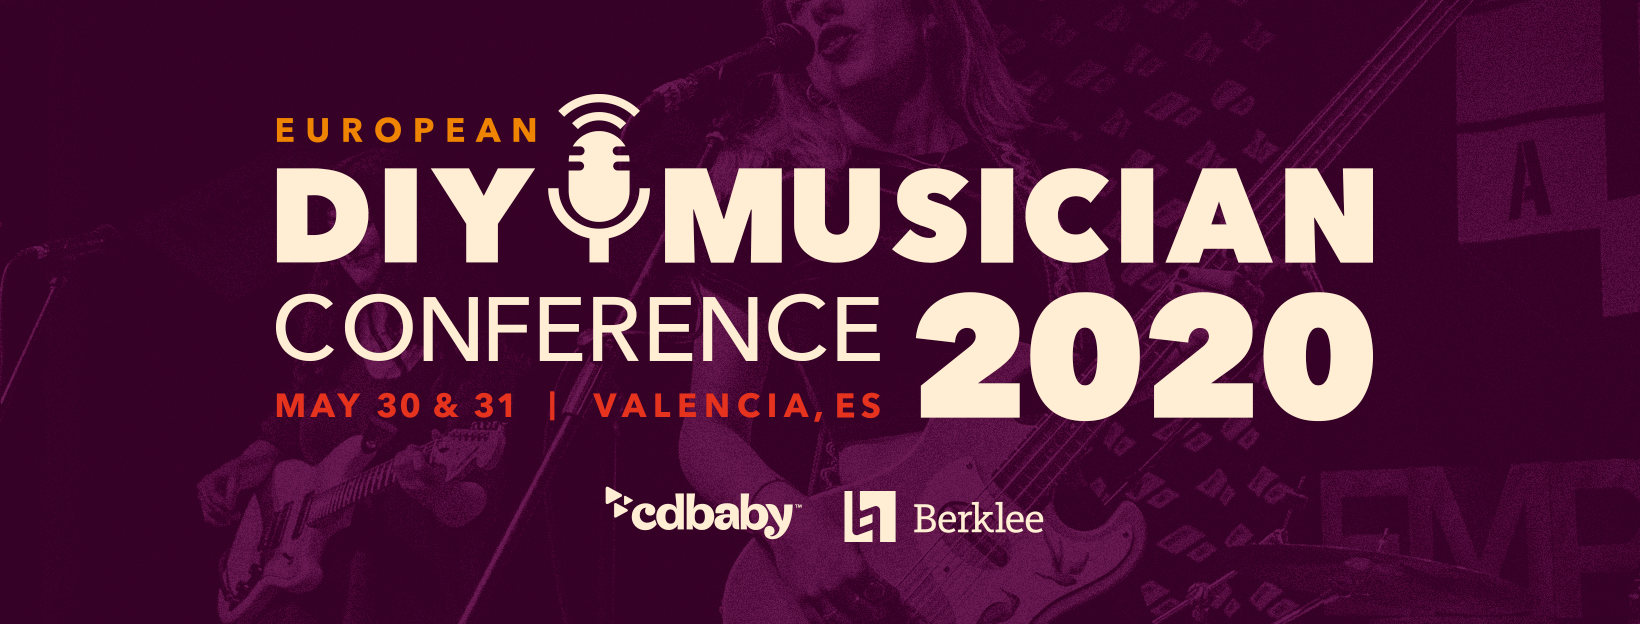 European DIY Musician Conference 2020